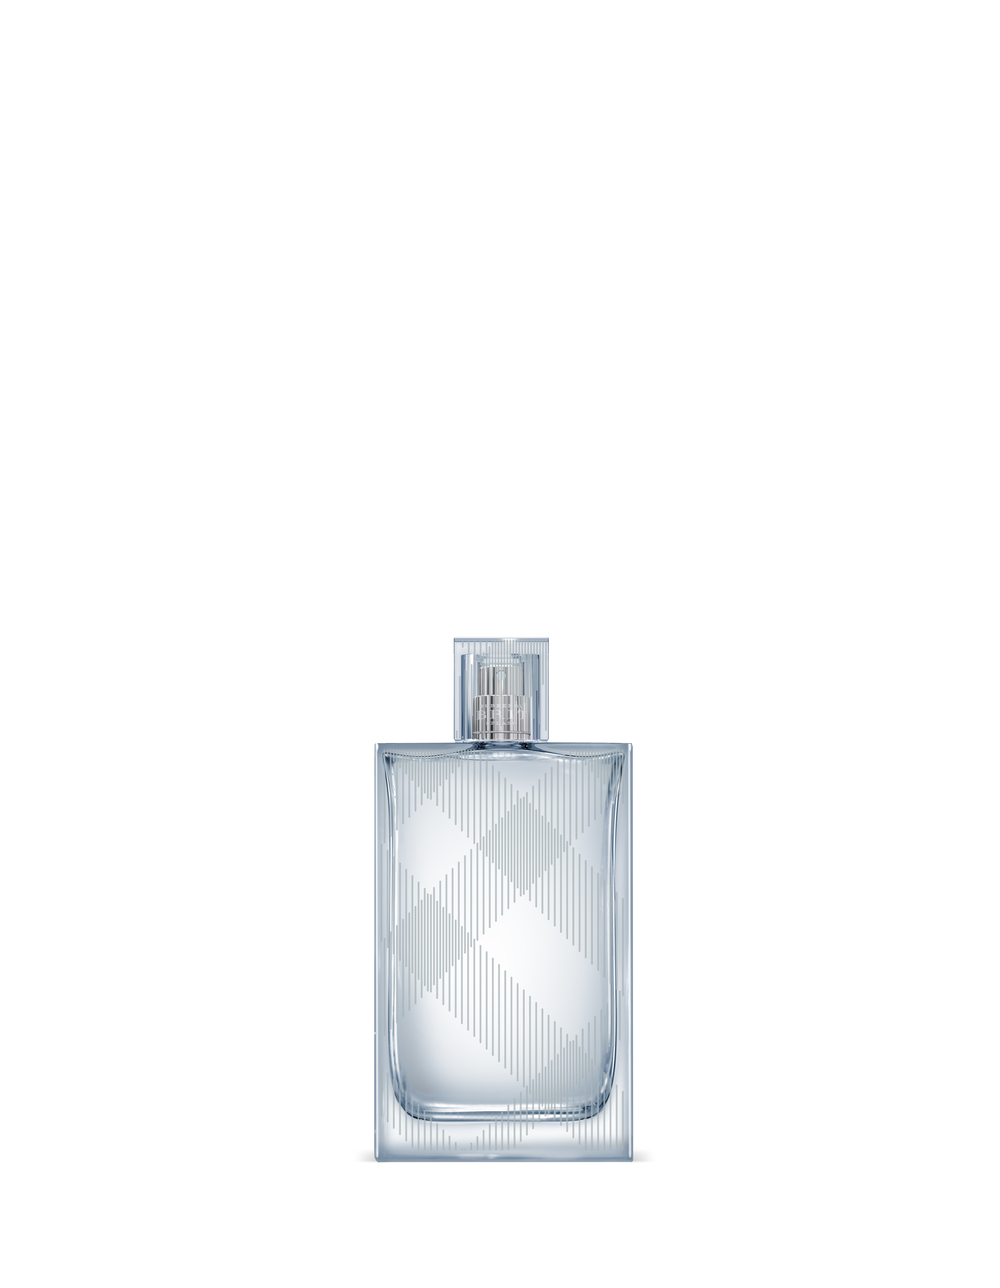 Burberry Fragrance - Brit Splash Eau De Toilette 100ML.jpg